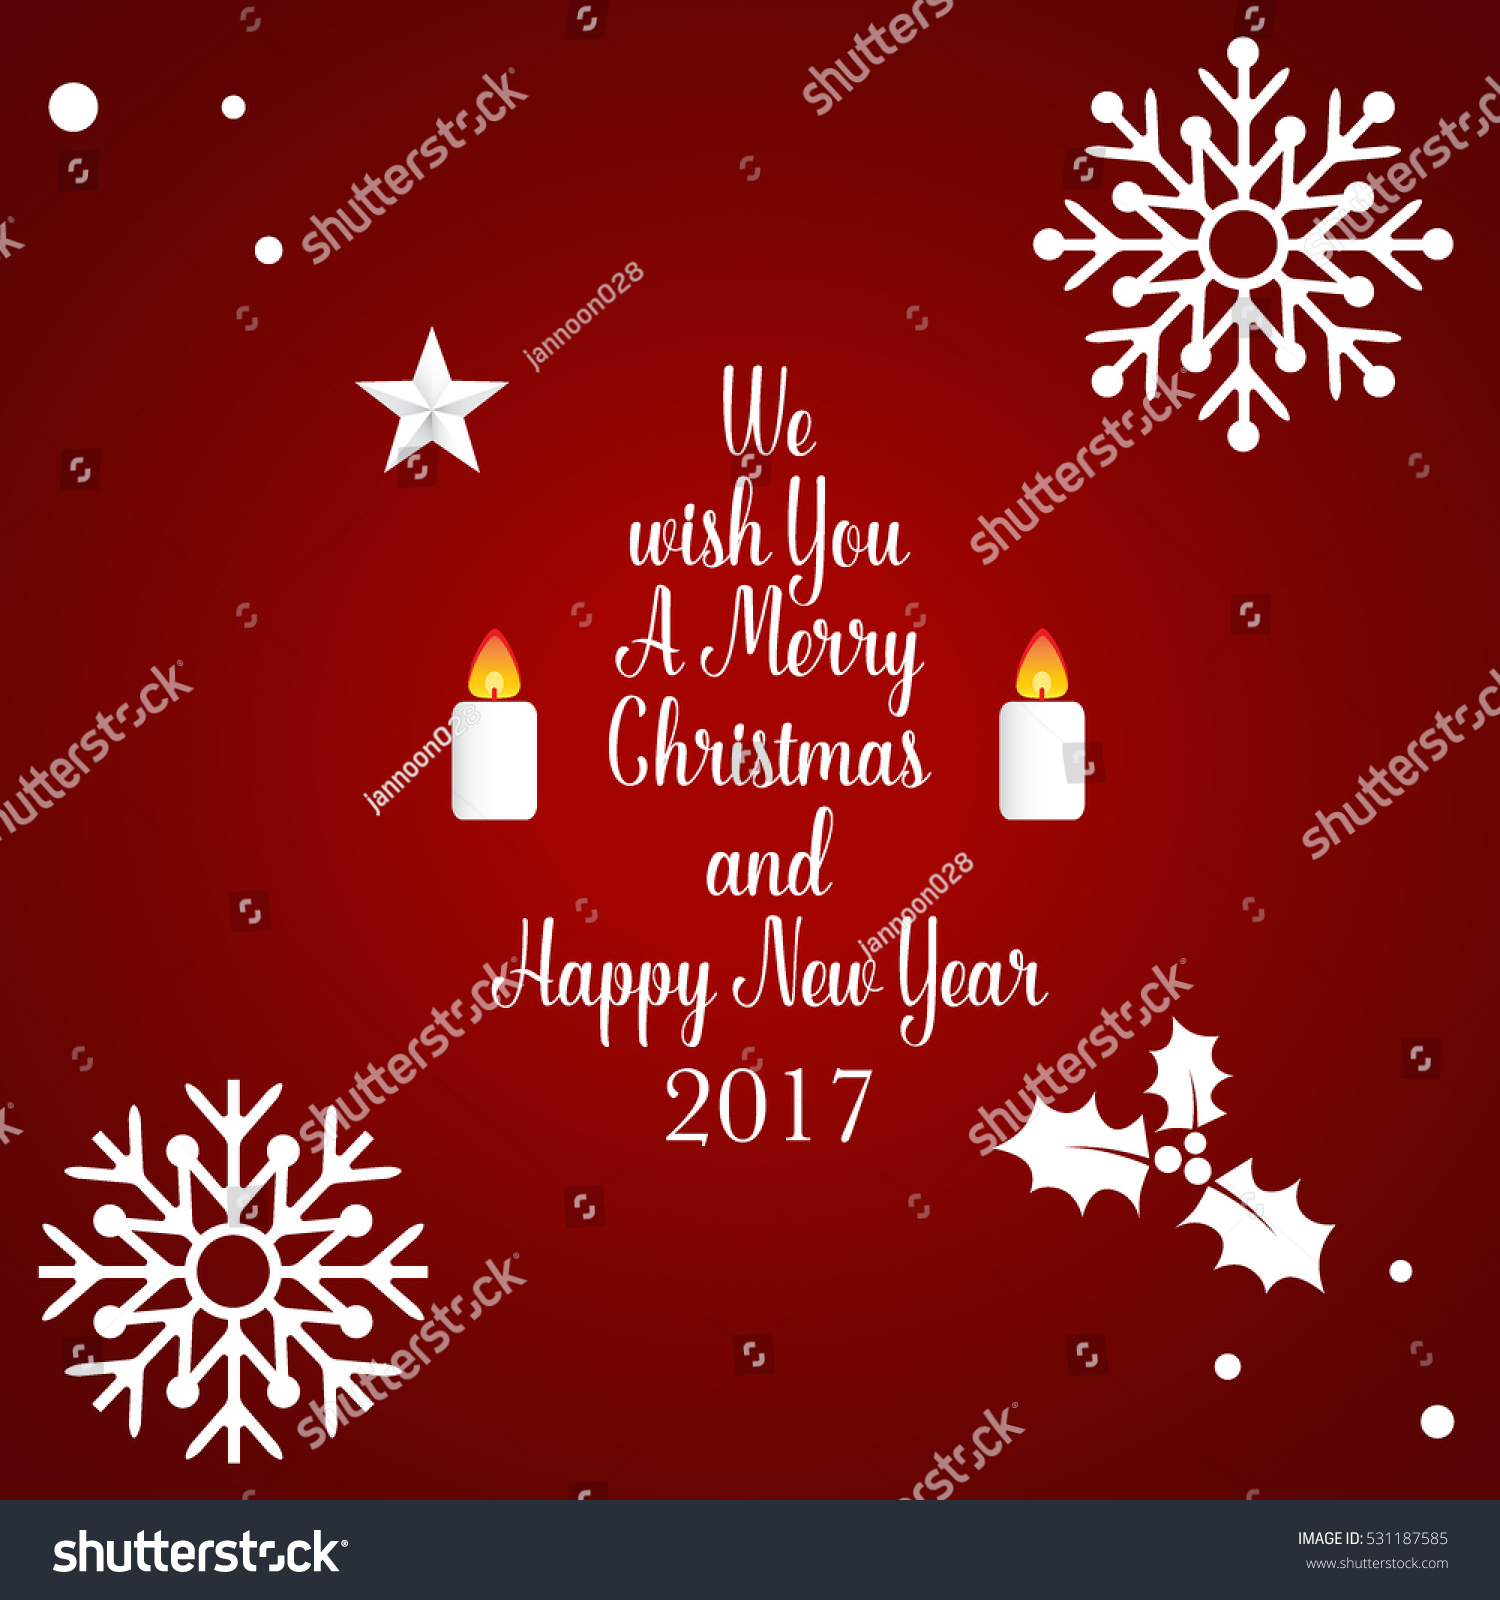 Superbe Merry Christmas And Happy New Year 2017 Greeting Card, Vector Illustration.